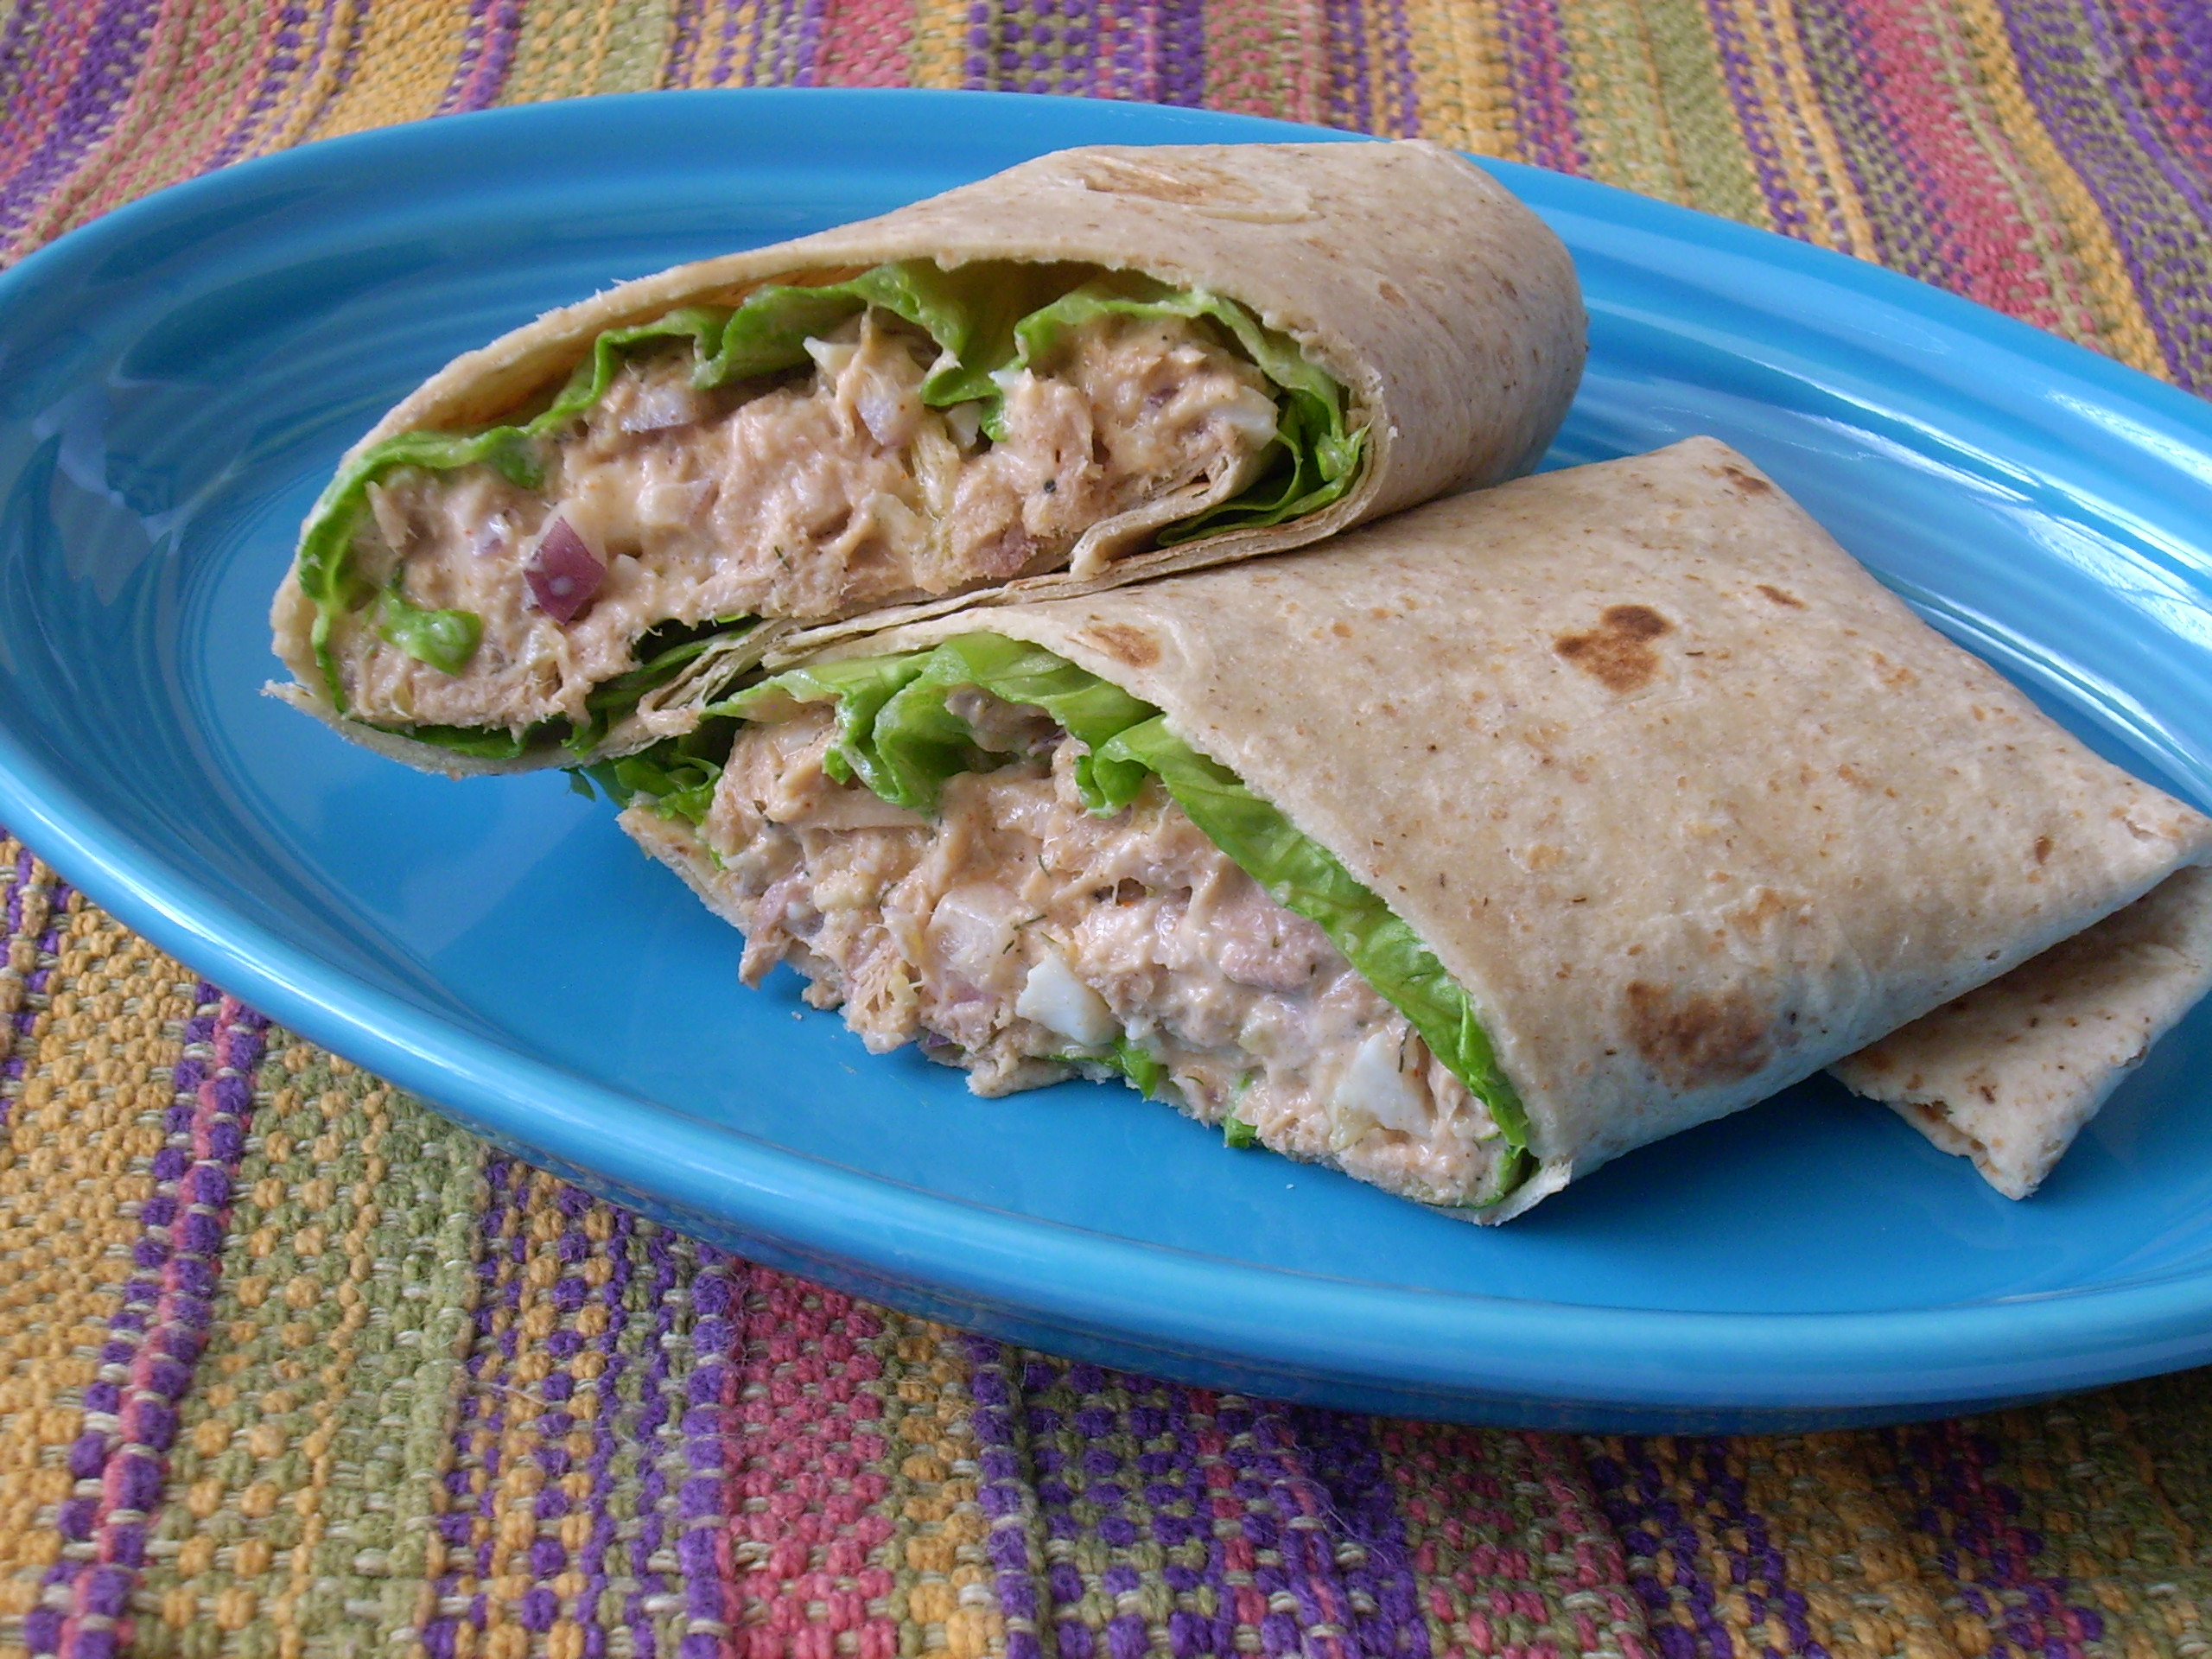 Tuna Salad Wrap - The Texas Peach